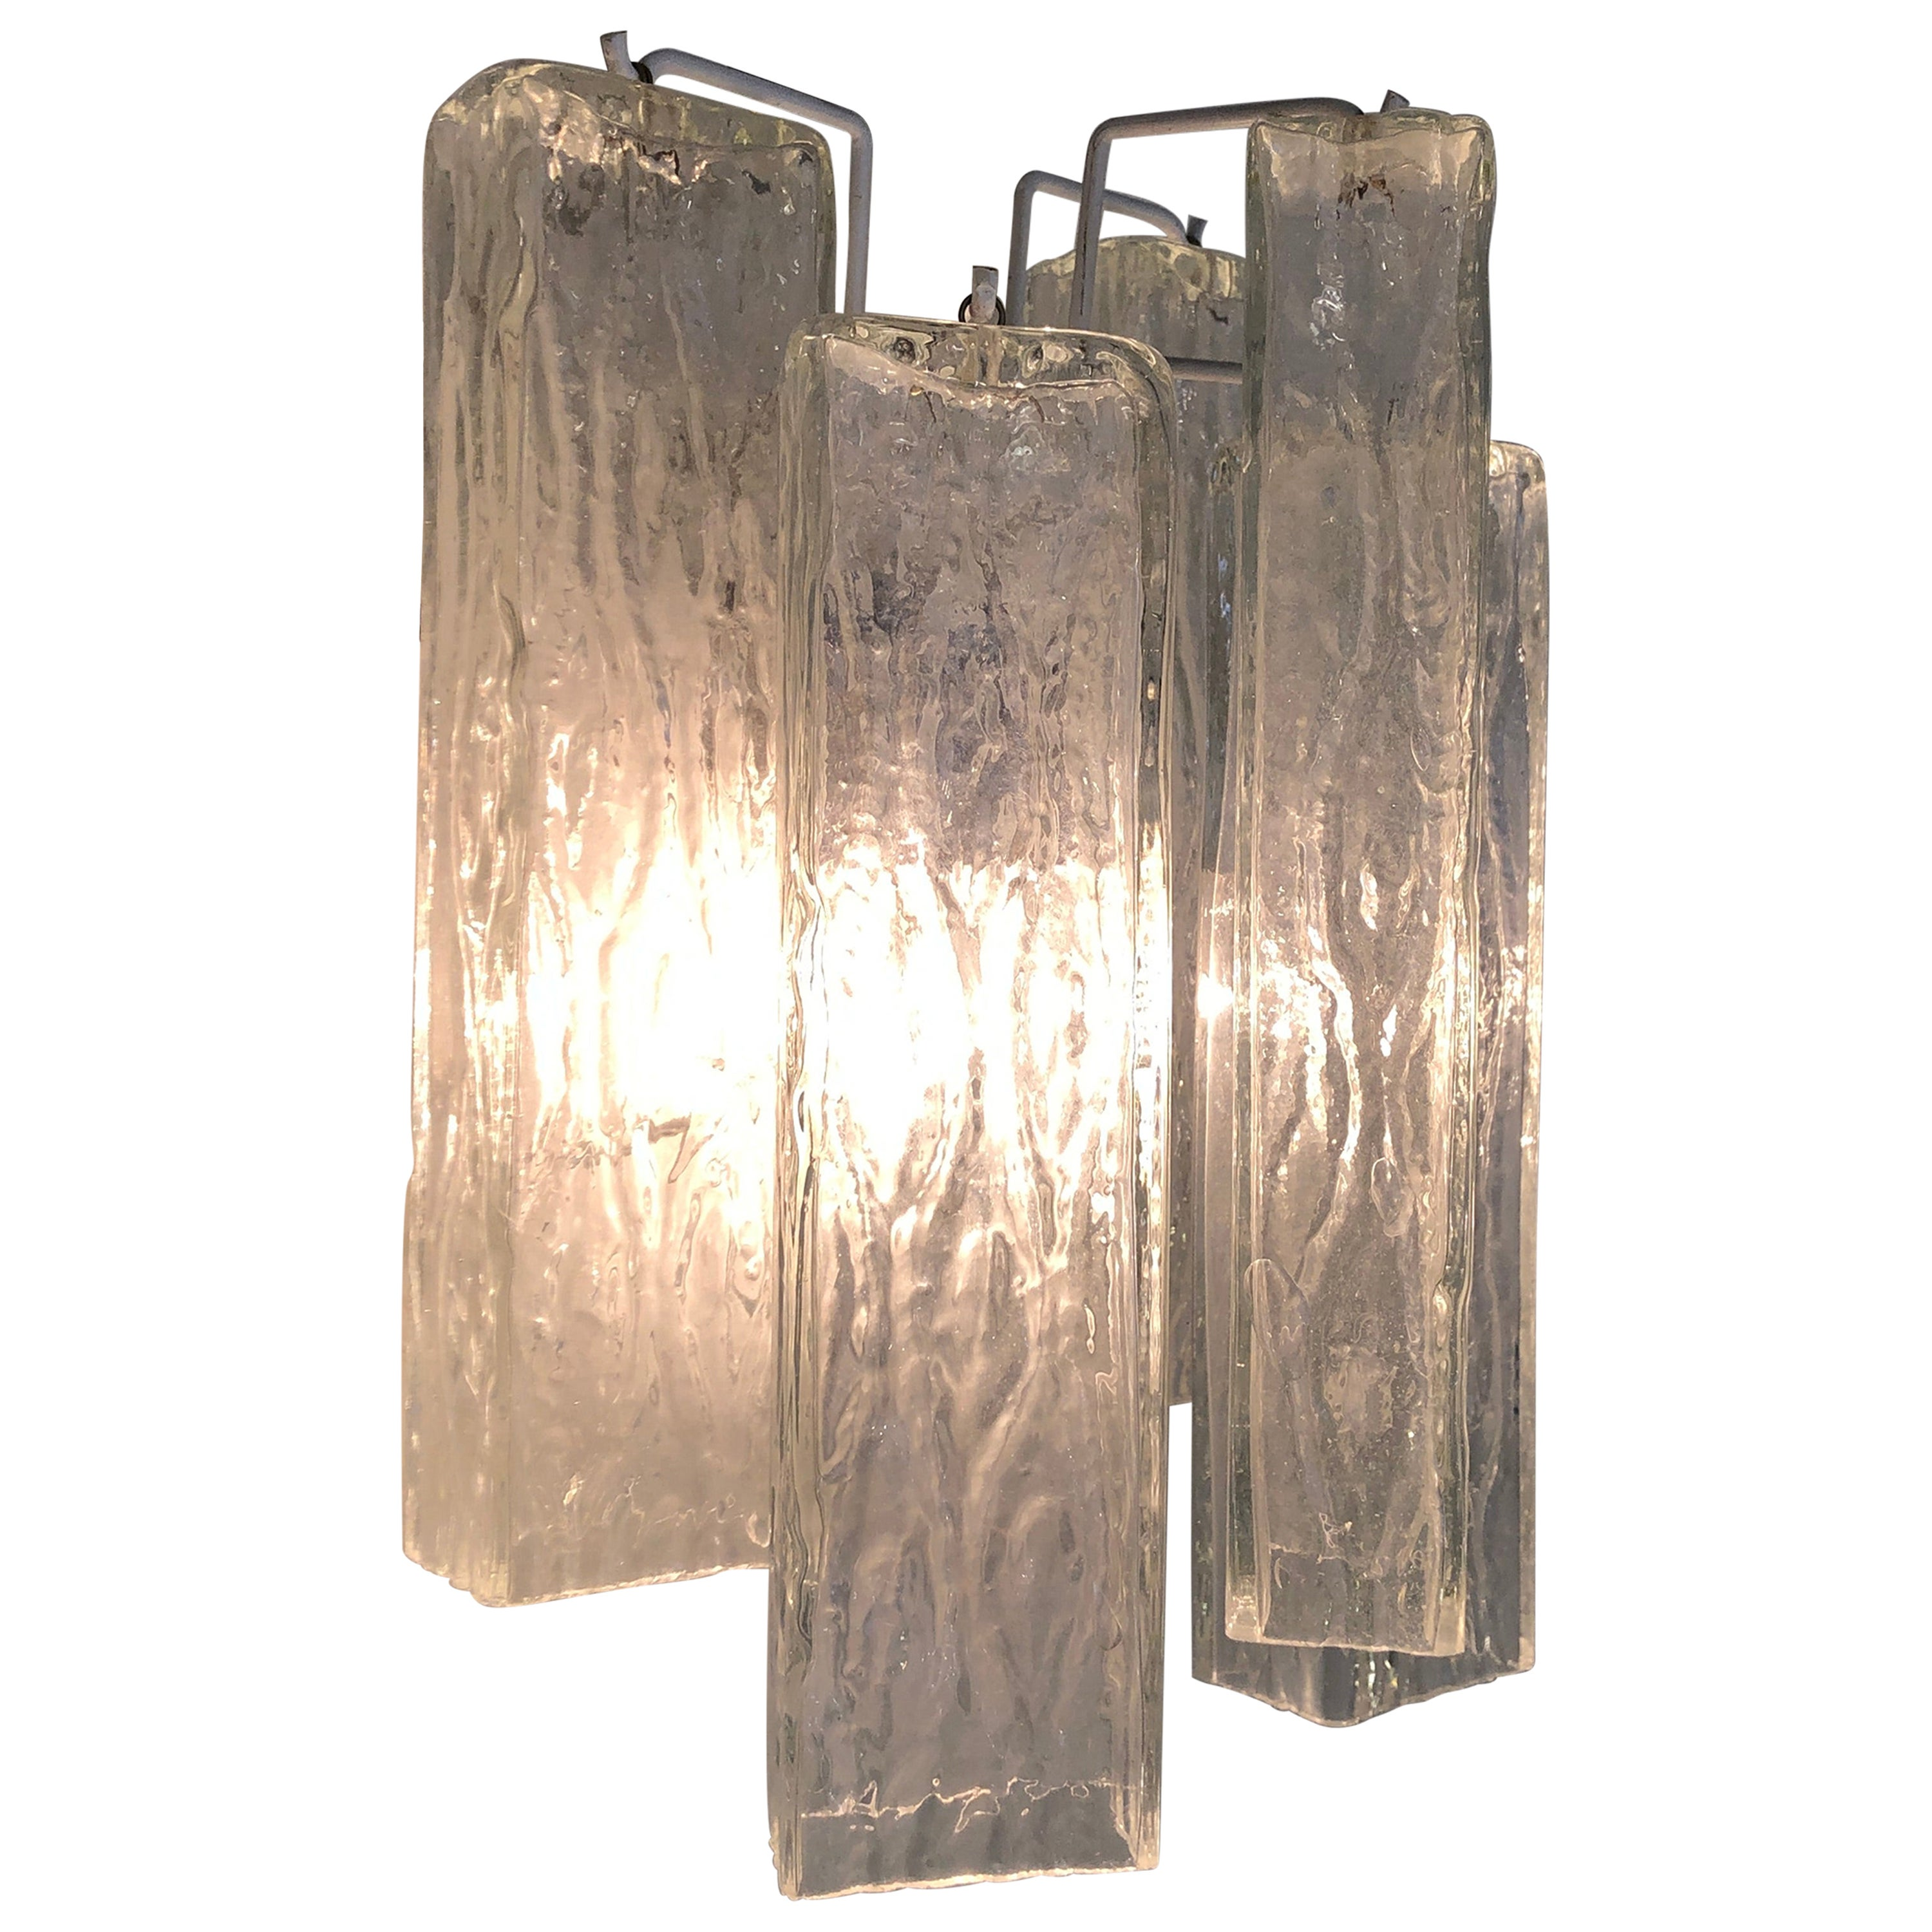 1950s Murano Transparent Artistic Glass Wall Sconces